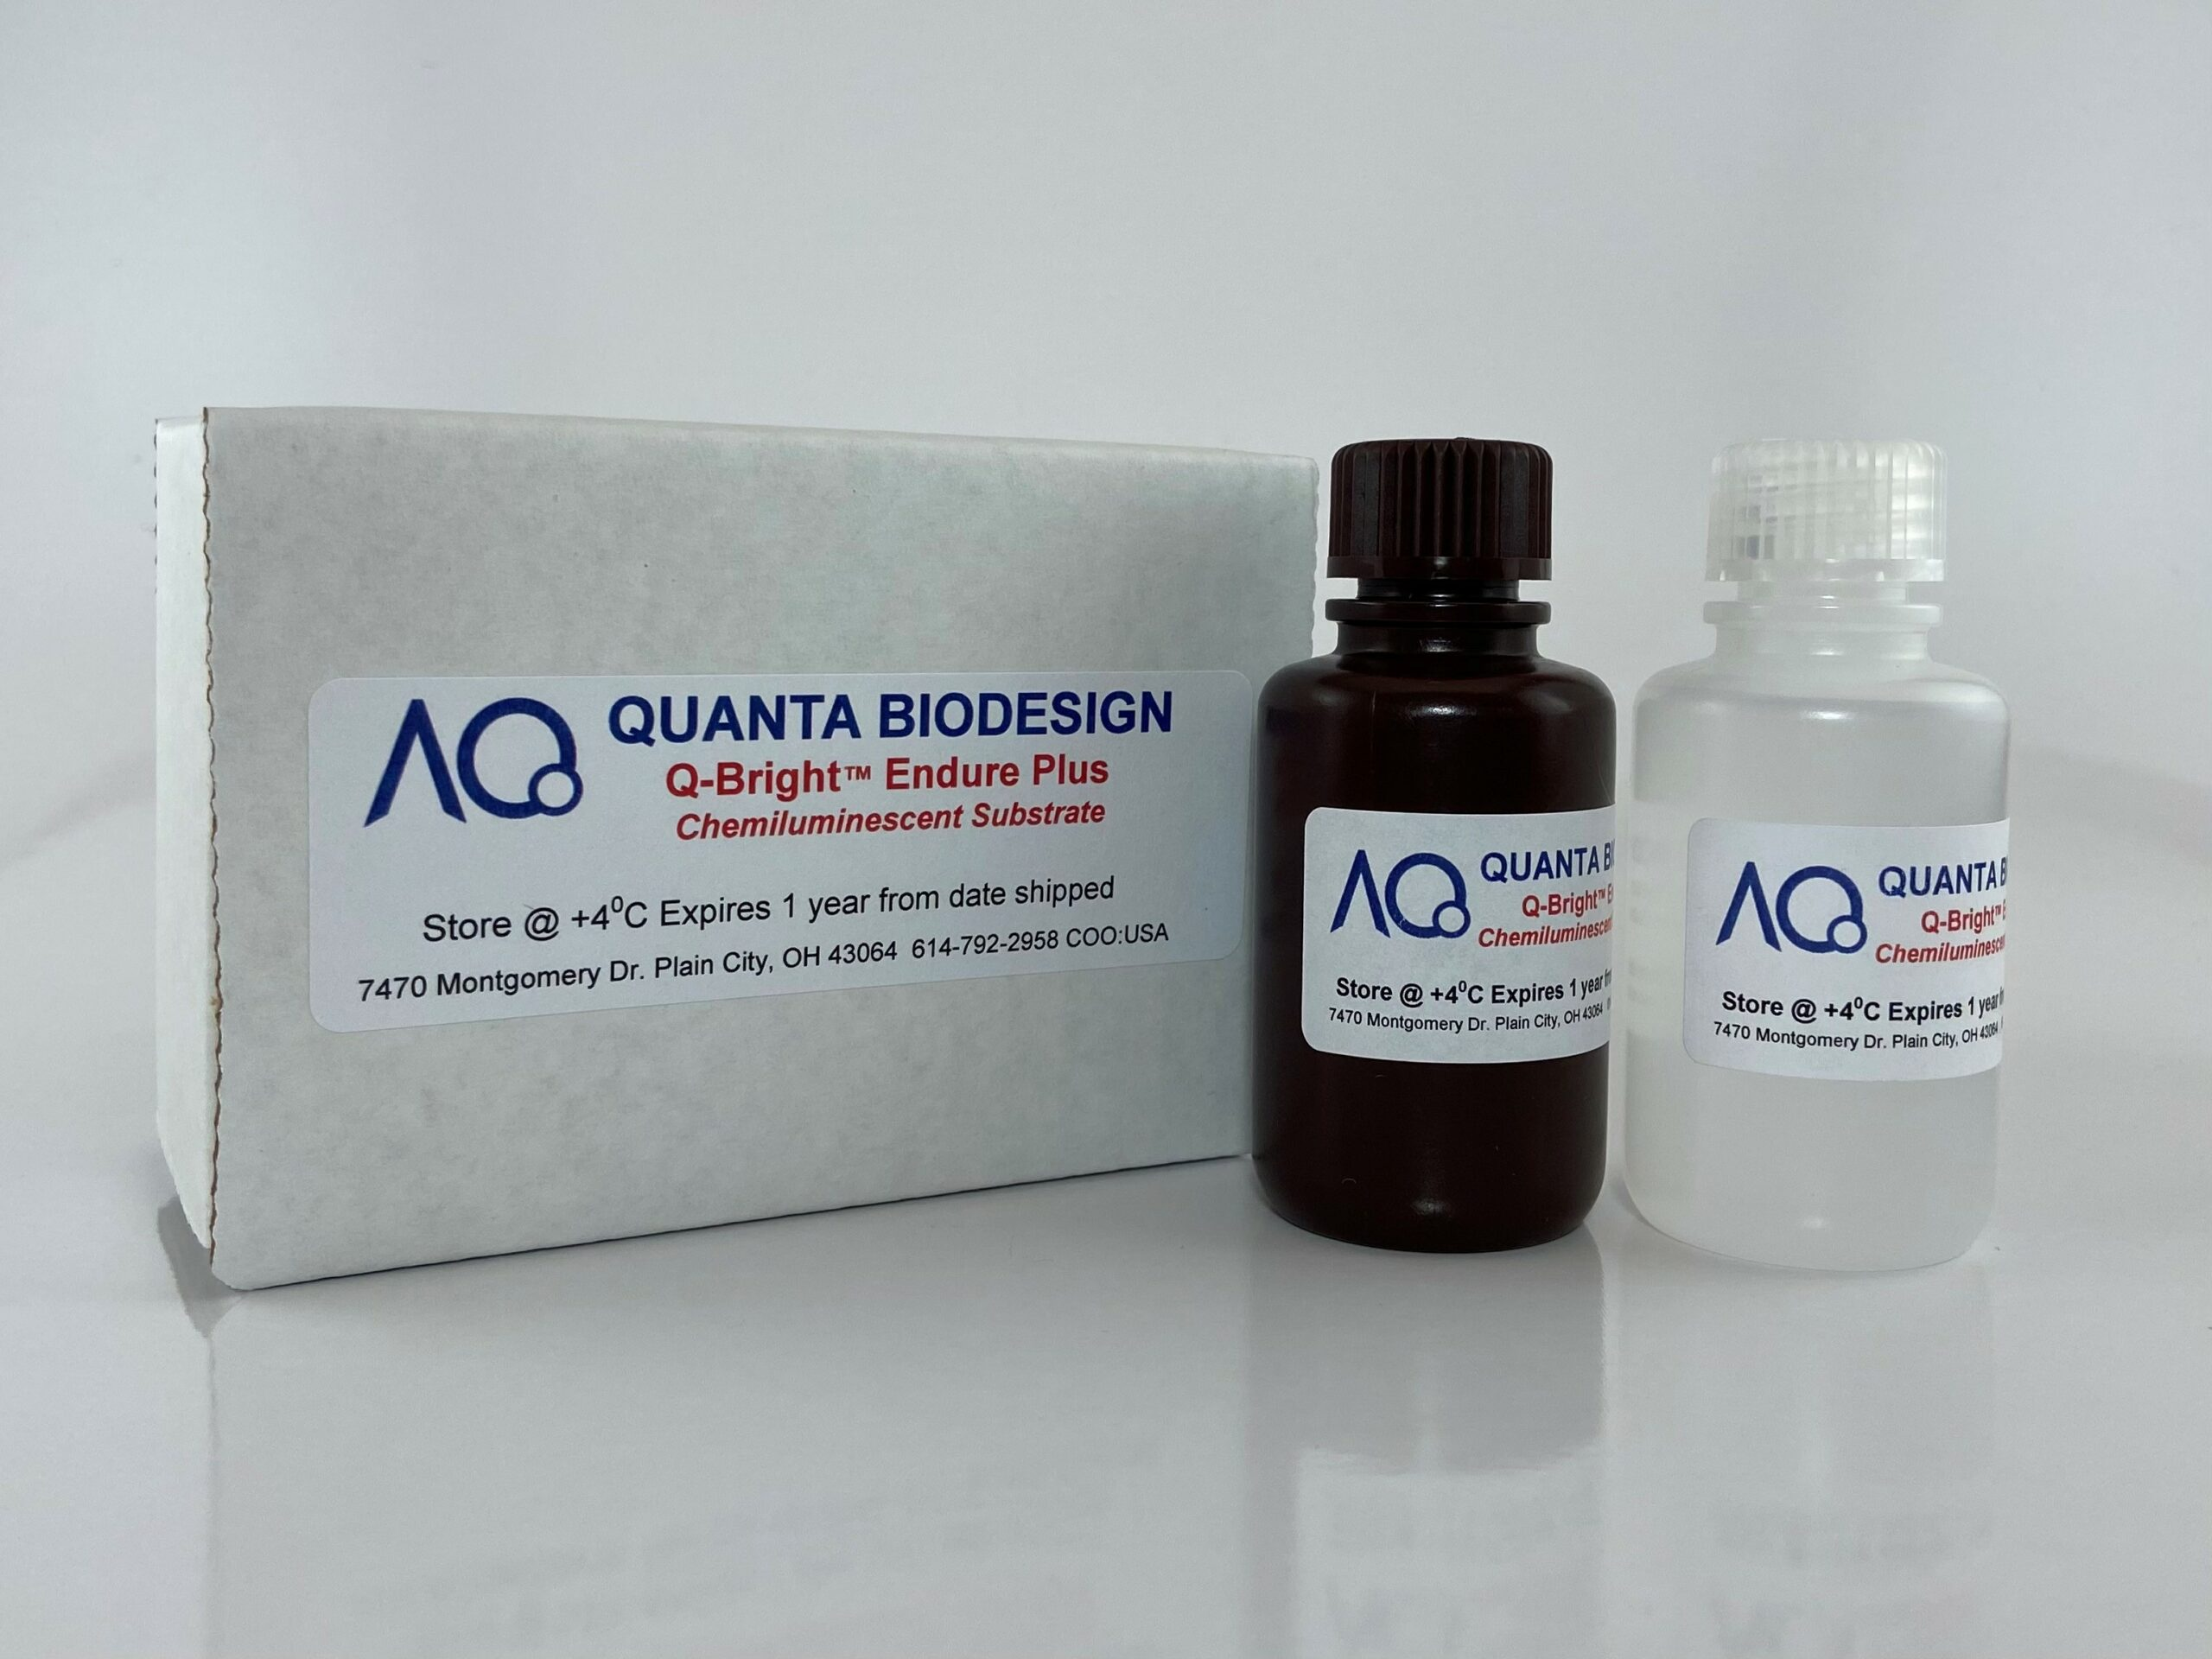 Q-Bright Endure Plus Chemiluminescent Detection Kit